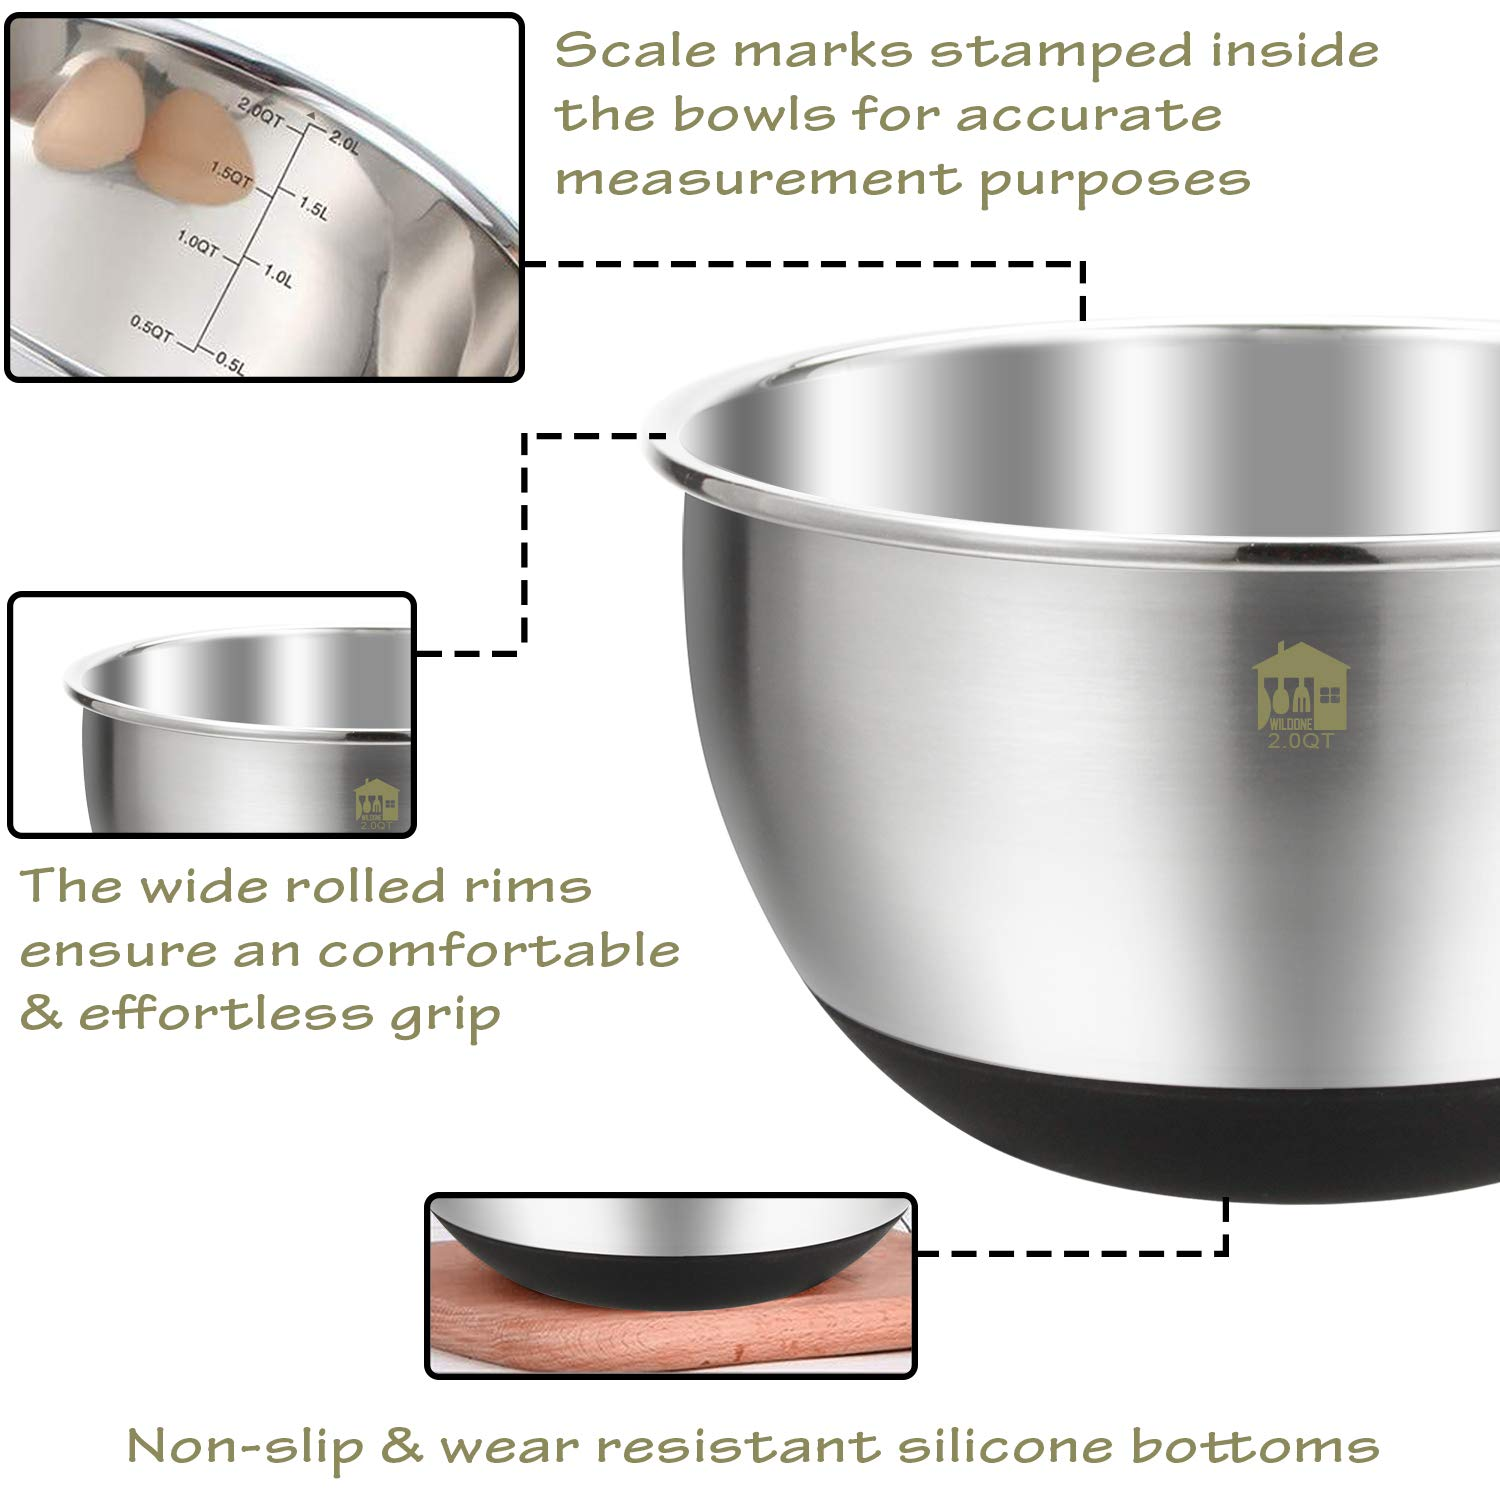 Wildone Stainless Steel Mixing Bowls, Nesting Bowls with Airtight Lids, Measurement Marks, Non Slip Silicone Bottoms, for Easy Mixing & Prepping - Set of 6 by Wildone (Image #2)